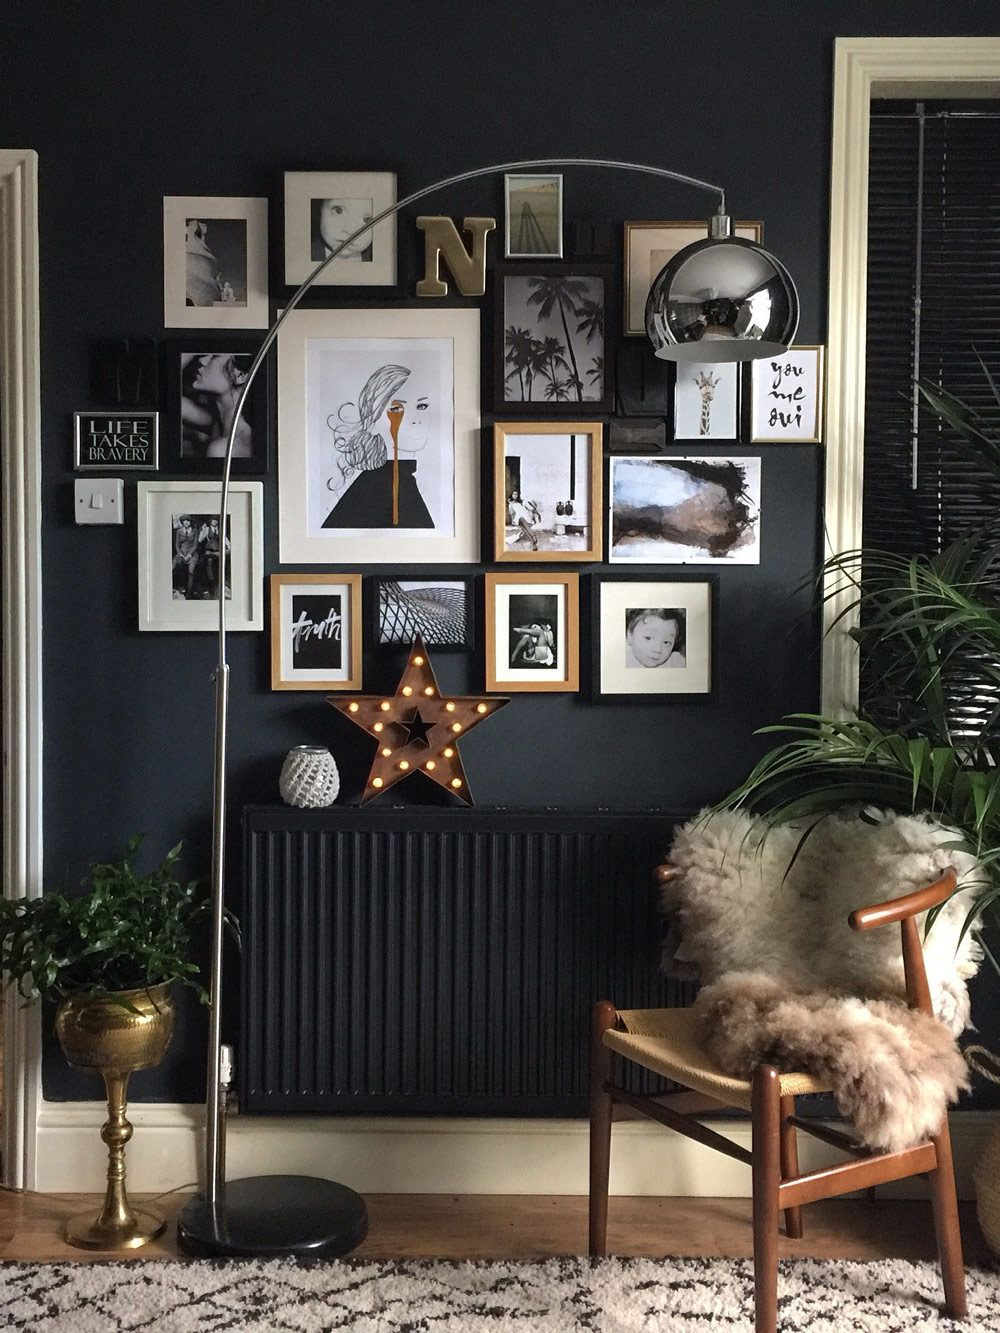 Design Gallery Live Especially Love The Dark Walls With Historic Details As The